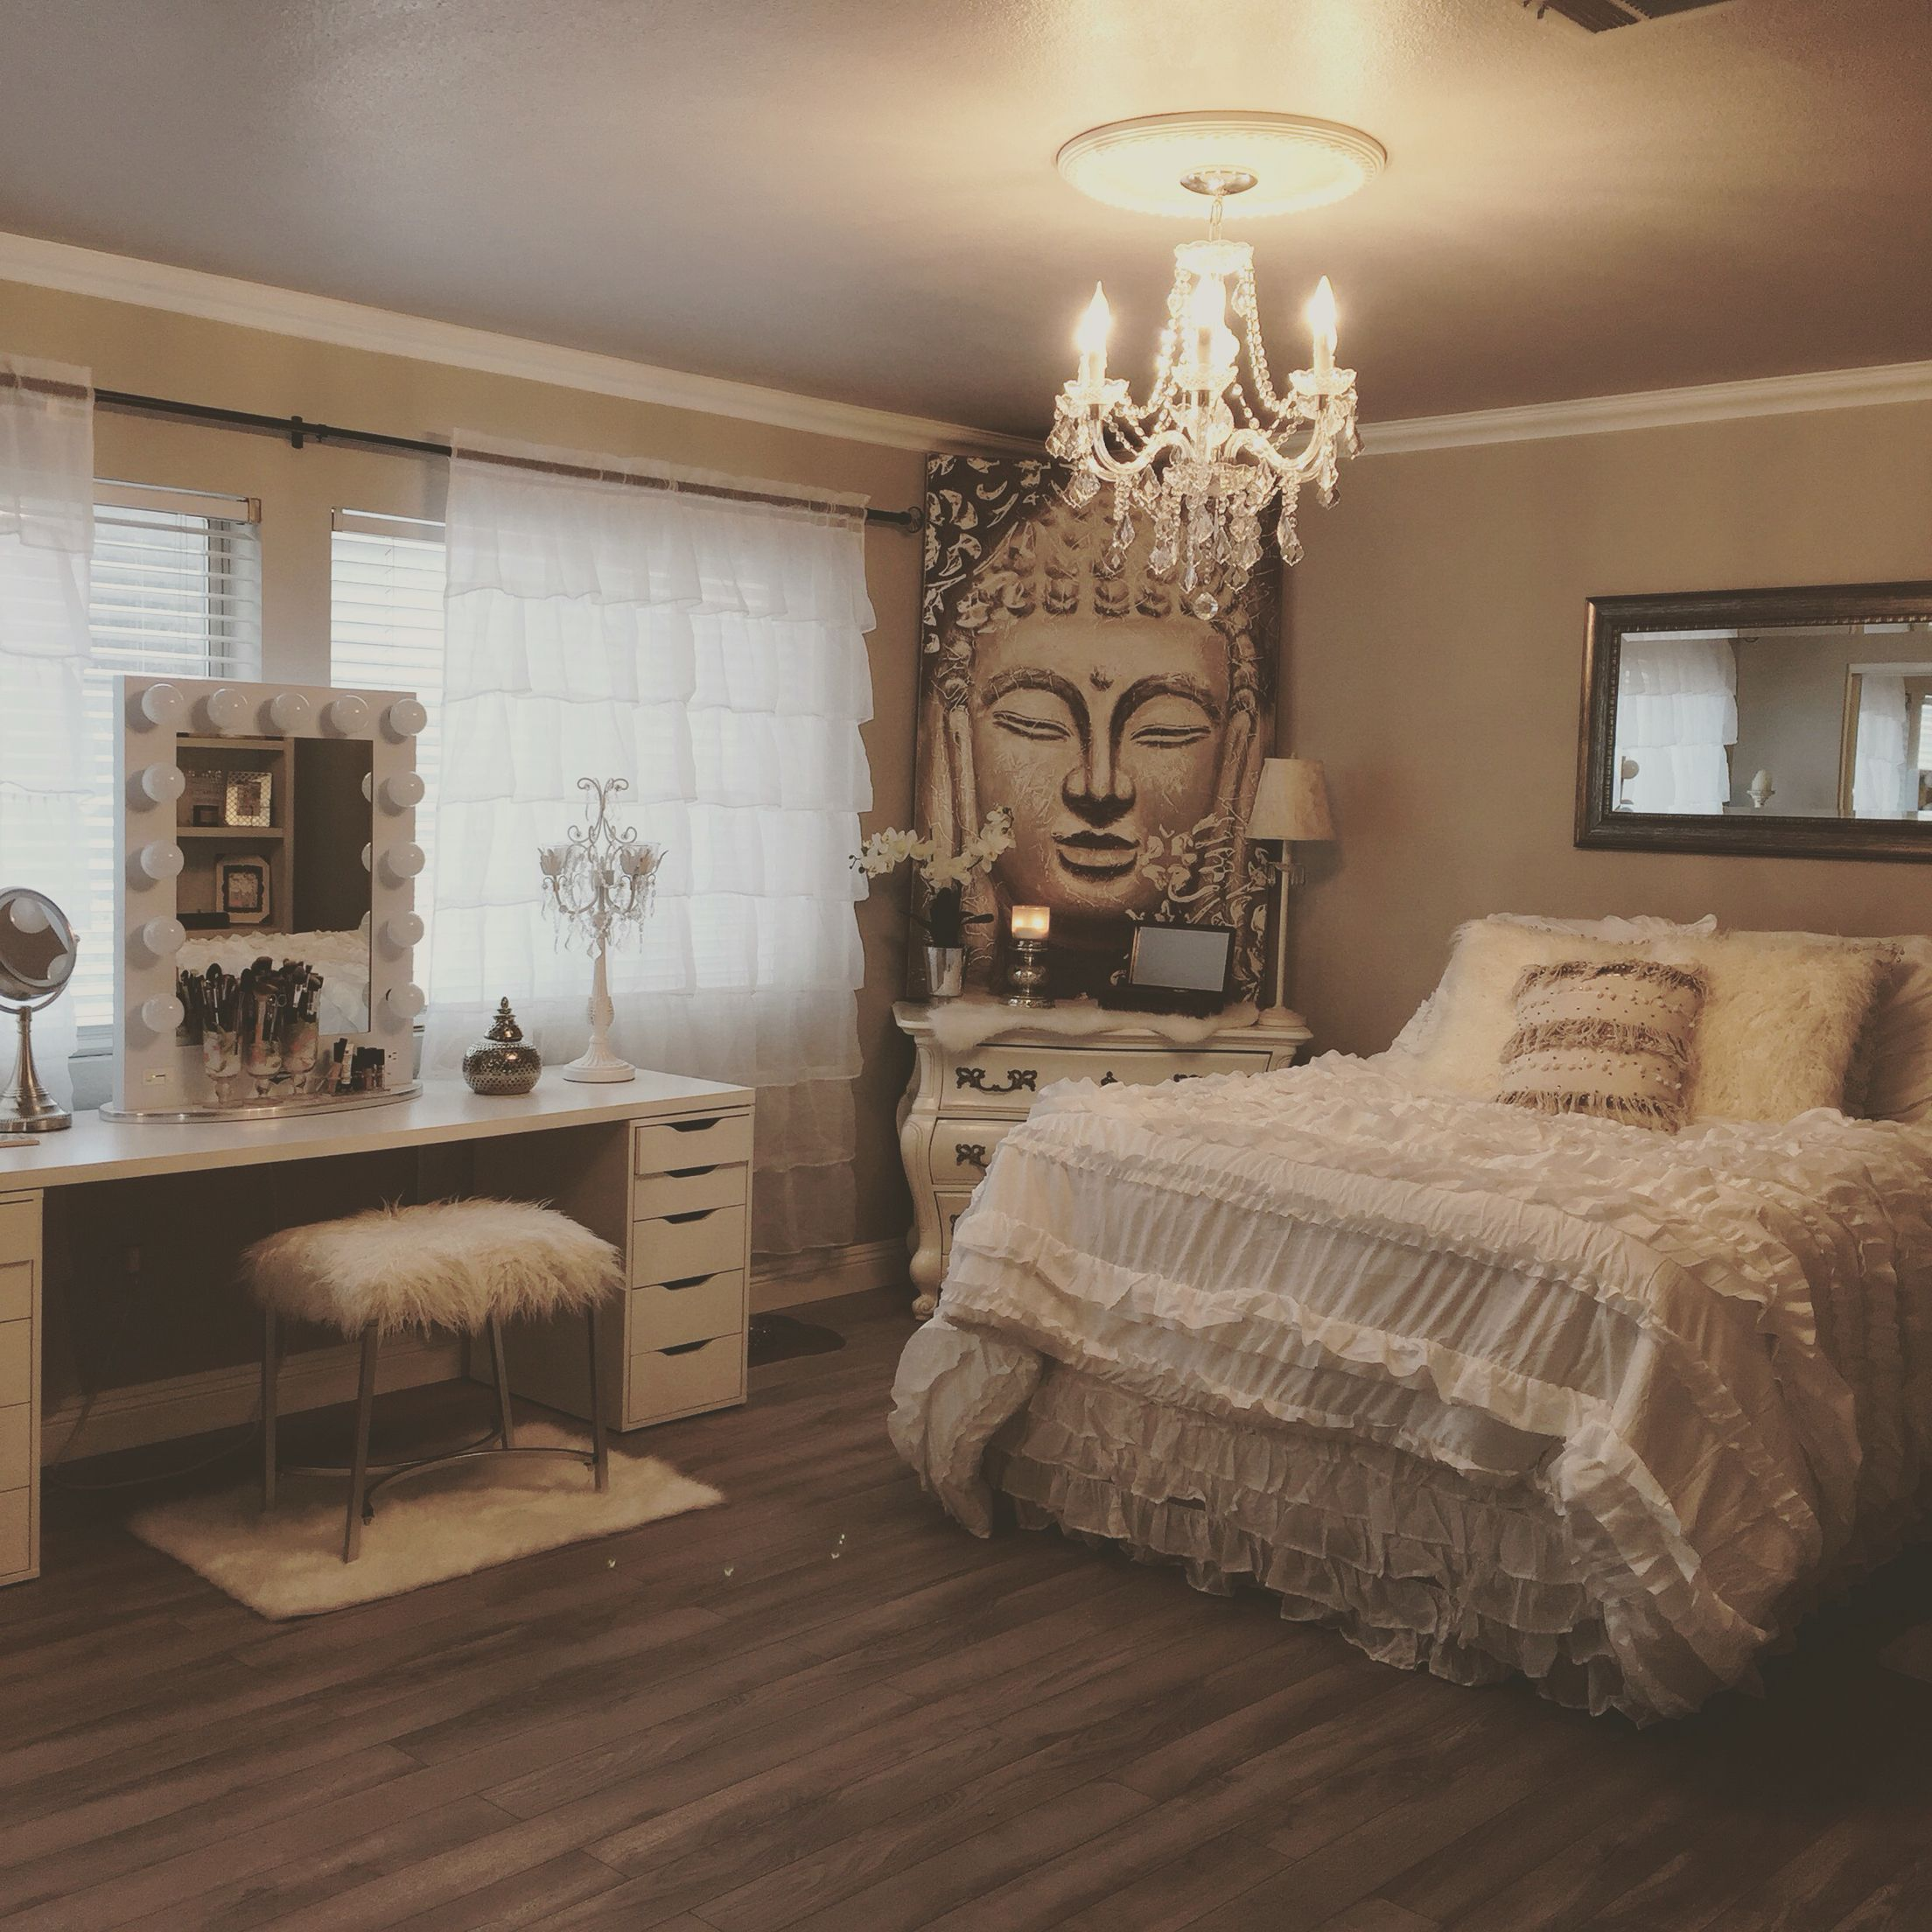 Shabby chic meets zen glam my new bedroom pinterest for Bedroom stuff